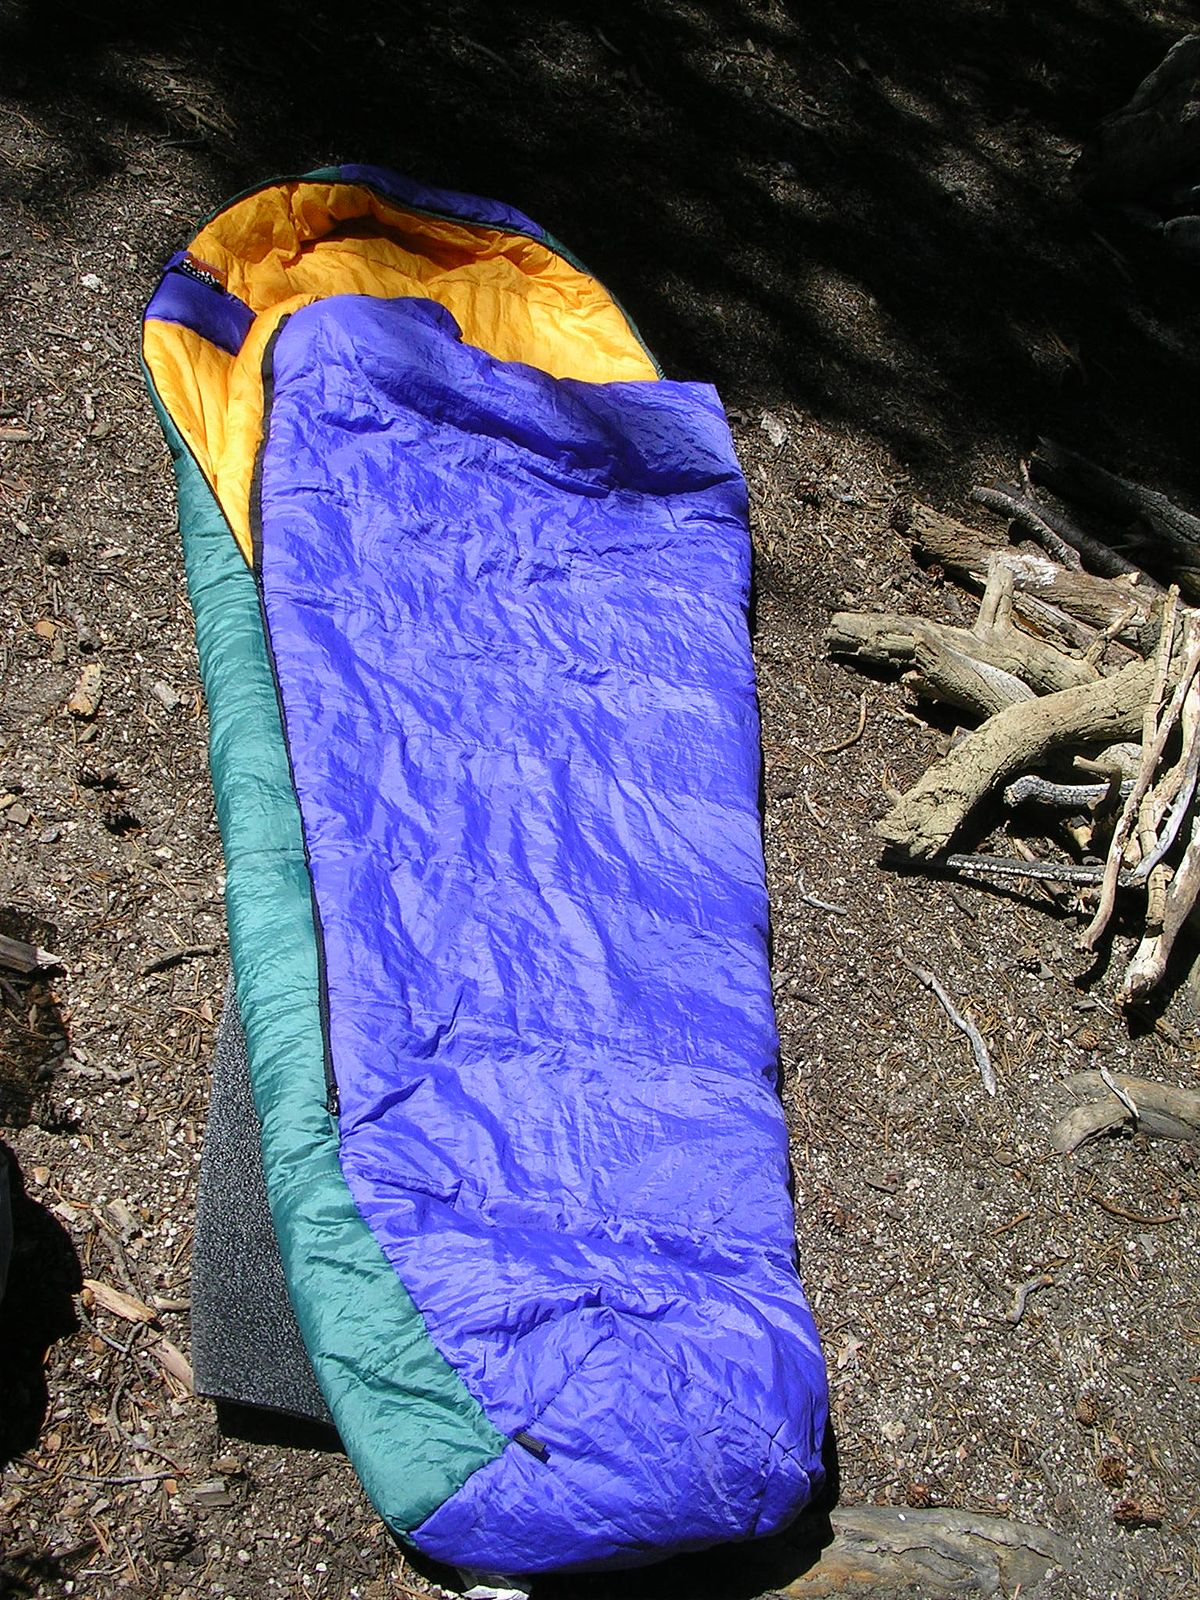 Sleeping bag - Wikipedia